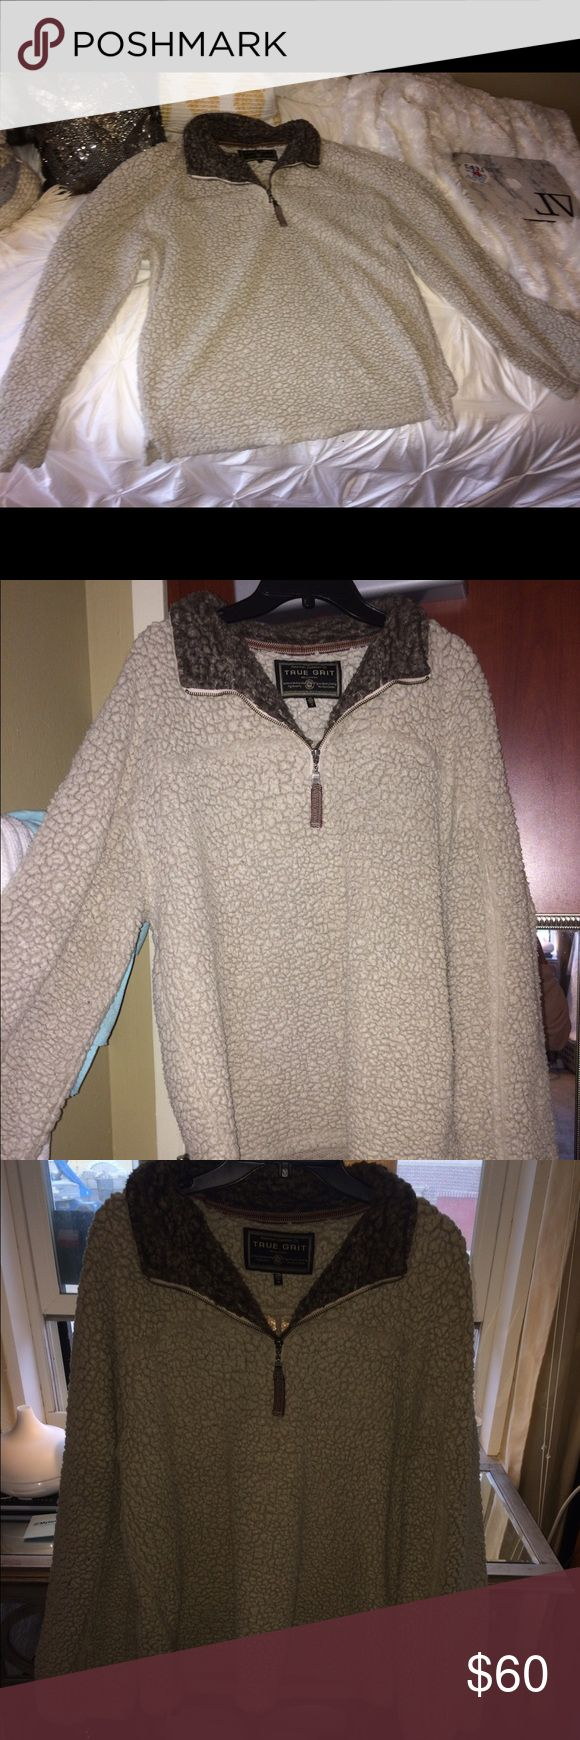 True grit cream colored pull over This true grit jacket is so soft! A nice cream color looks great on everyone. Size medium! Worn a few times. Rarely ever gets cold where I live. Super comfortable versatile pull over! True Grit Jackets & Coats